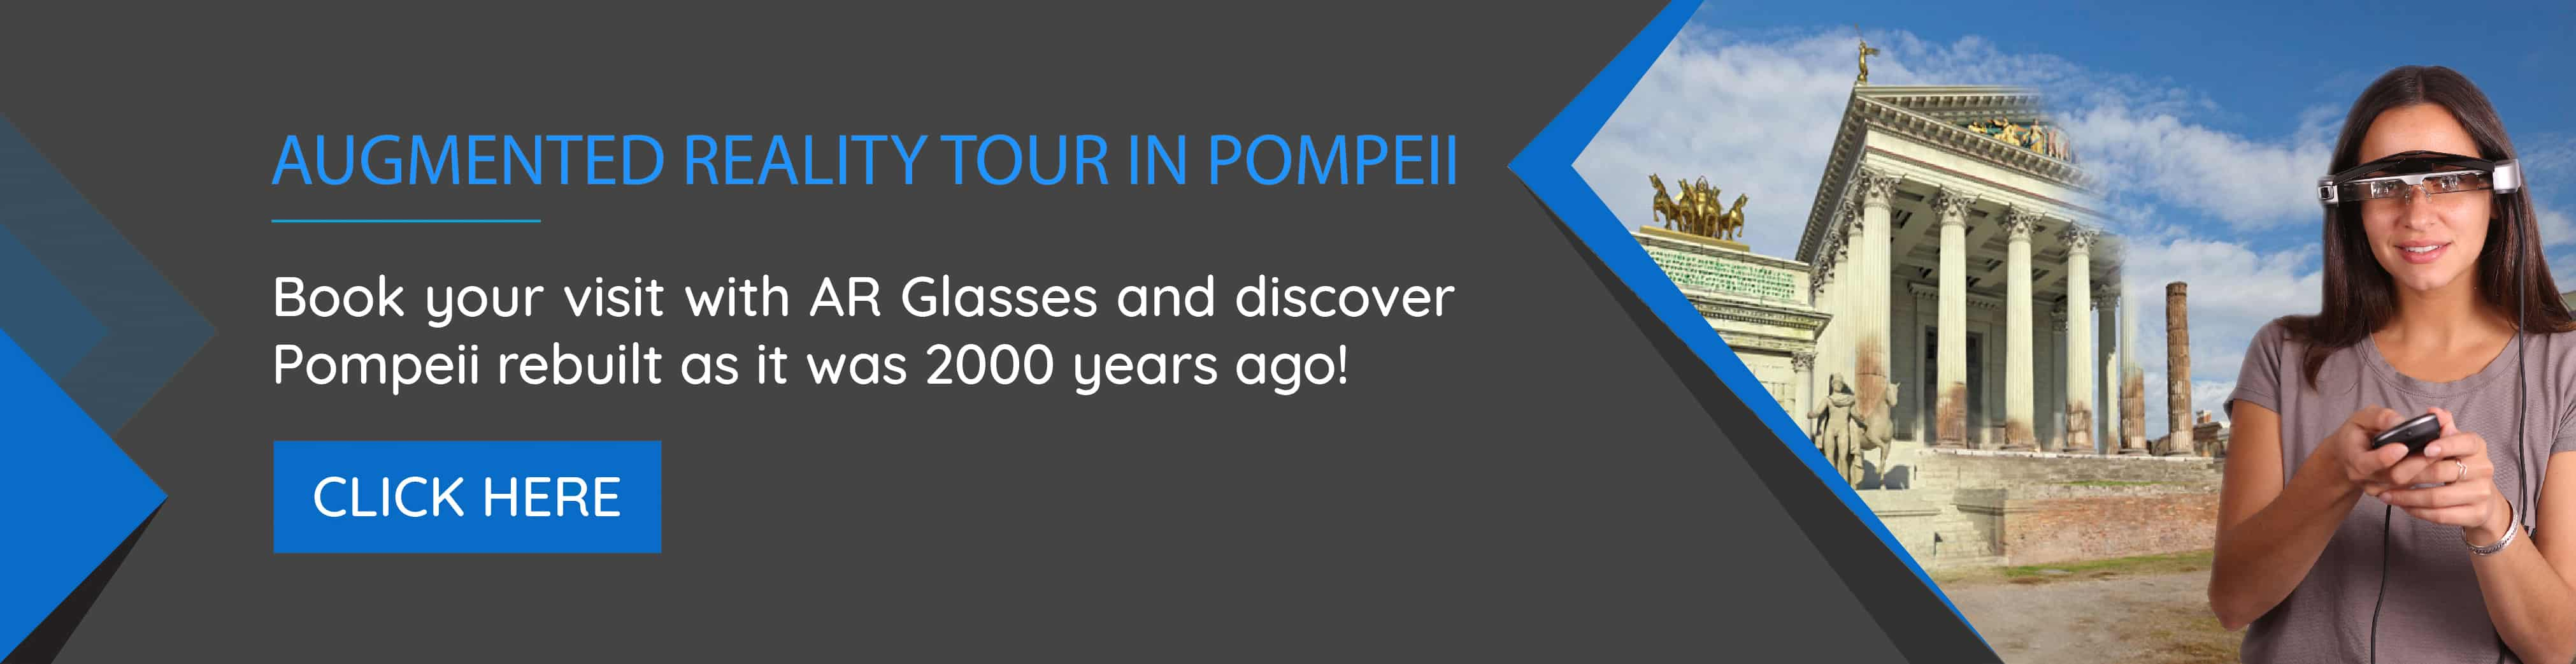 AR Tour - Augmented Reality Tour in Pompeii - Book your visit with AR Glasses and discover Pompeii rebuilt as it was 2000 year ago!